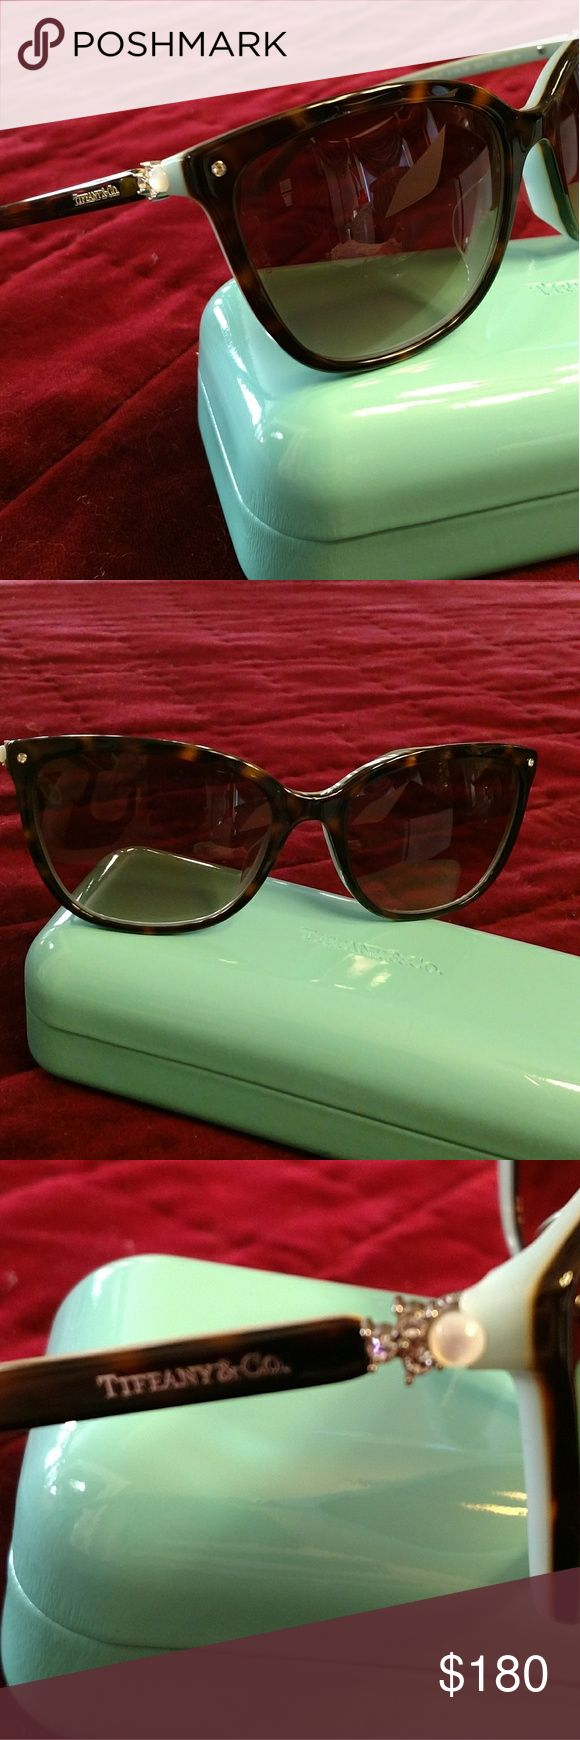 💥NEW💥 Tiffany & Co. Sunglasses Mint condition. Tortoise shell frames, lined with classic Tiffany blue. Sides are adorned with mother of pearl, and rhinestone. Prices are set. If you want a discount please use my bundle option. Please see all photos for full description and details. Tiffany & Co. Accessories Sunglasses